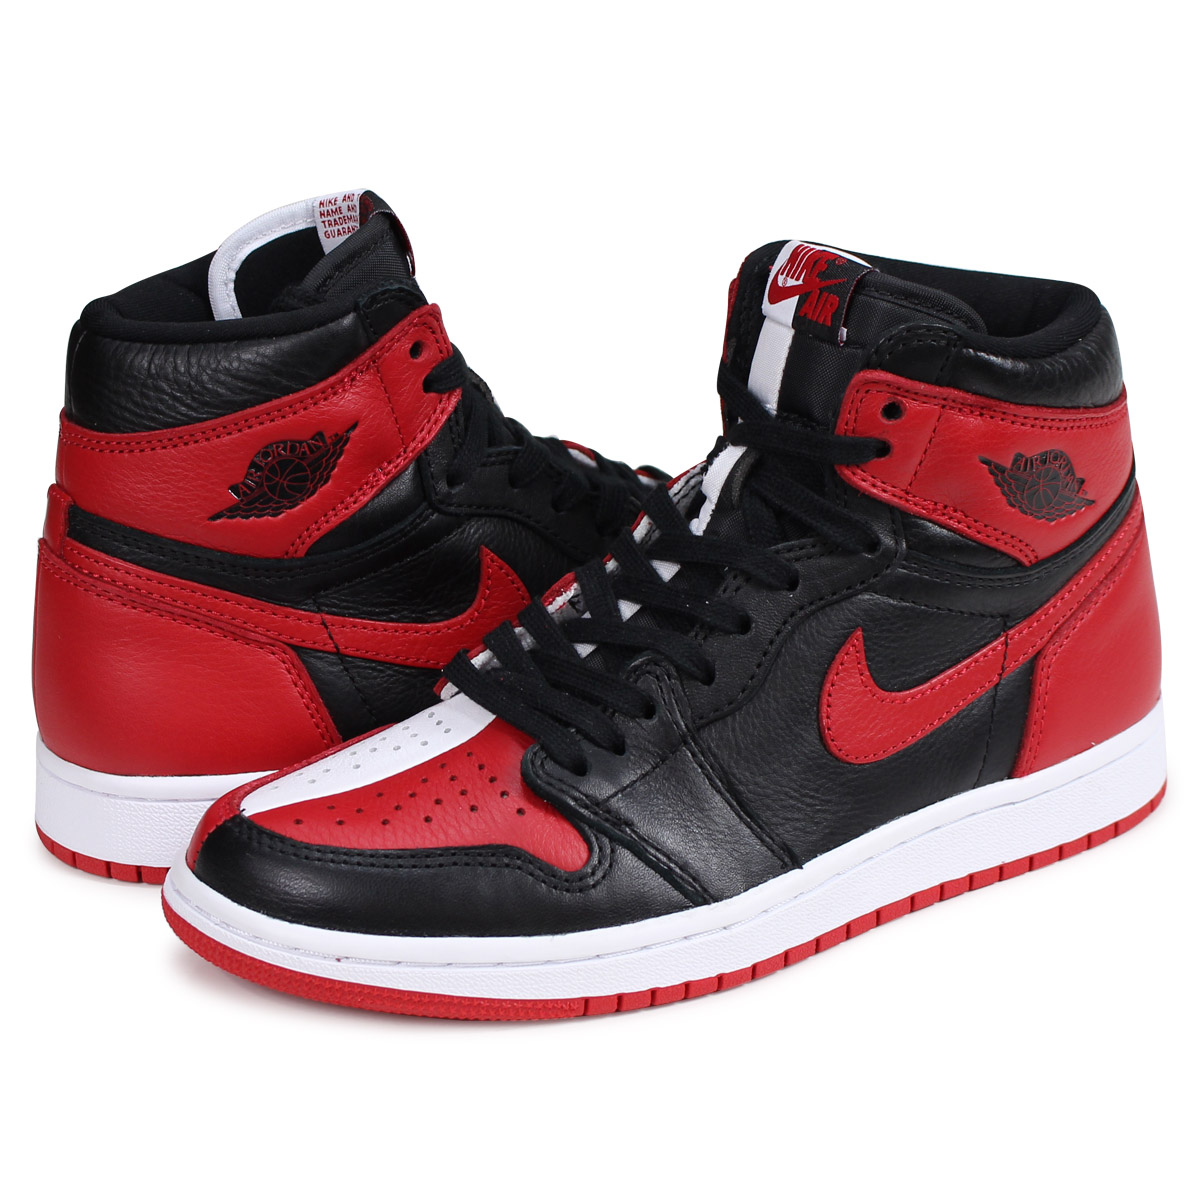 designer fashion f5f50 e63f0 NIKE AIR JORDAN 1 RETRO HIGH OG HOMAGE TO HOME Nike Air Jordan 1 nostalgic  Haile Dis sneakers 861,428-061 red  load planned Shinnyu load in  reservation ...